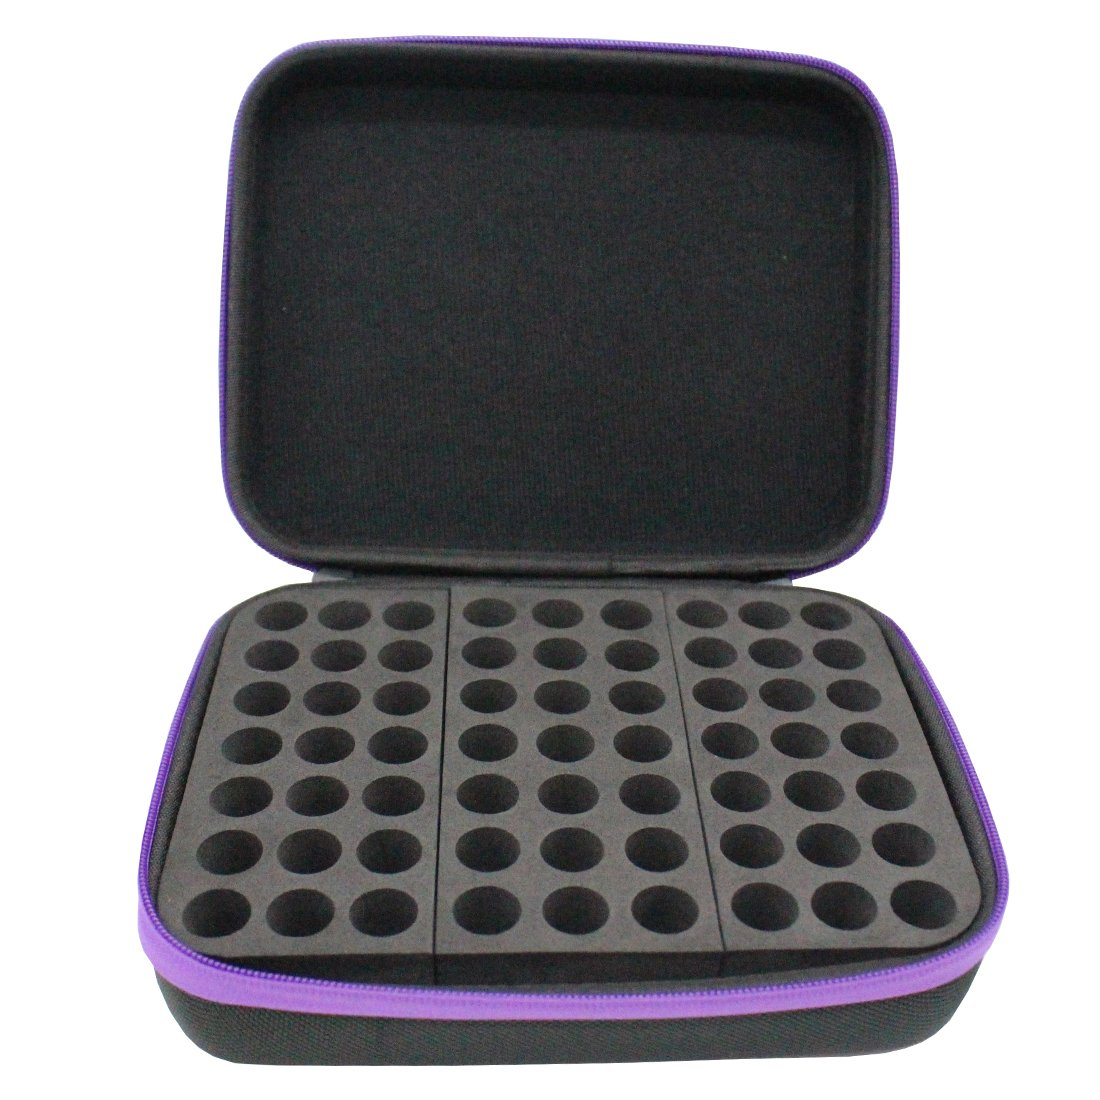 TePiLl Essential Oil Carrying Case 63 Bottles Travel Carrier Holder Portable Hanging EVA 1ml-3ml for Young Living & Doterra Container(Purple)